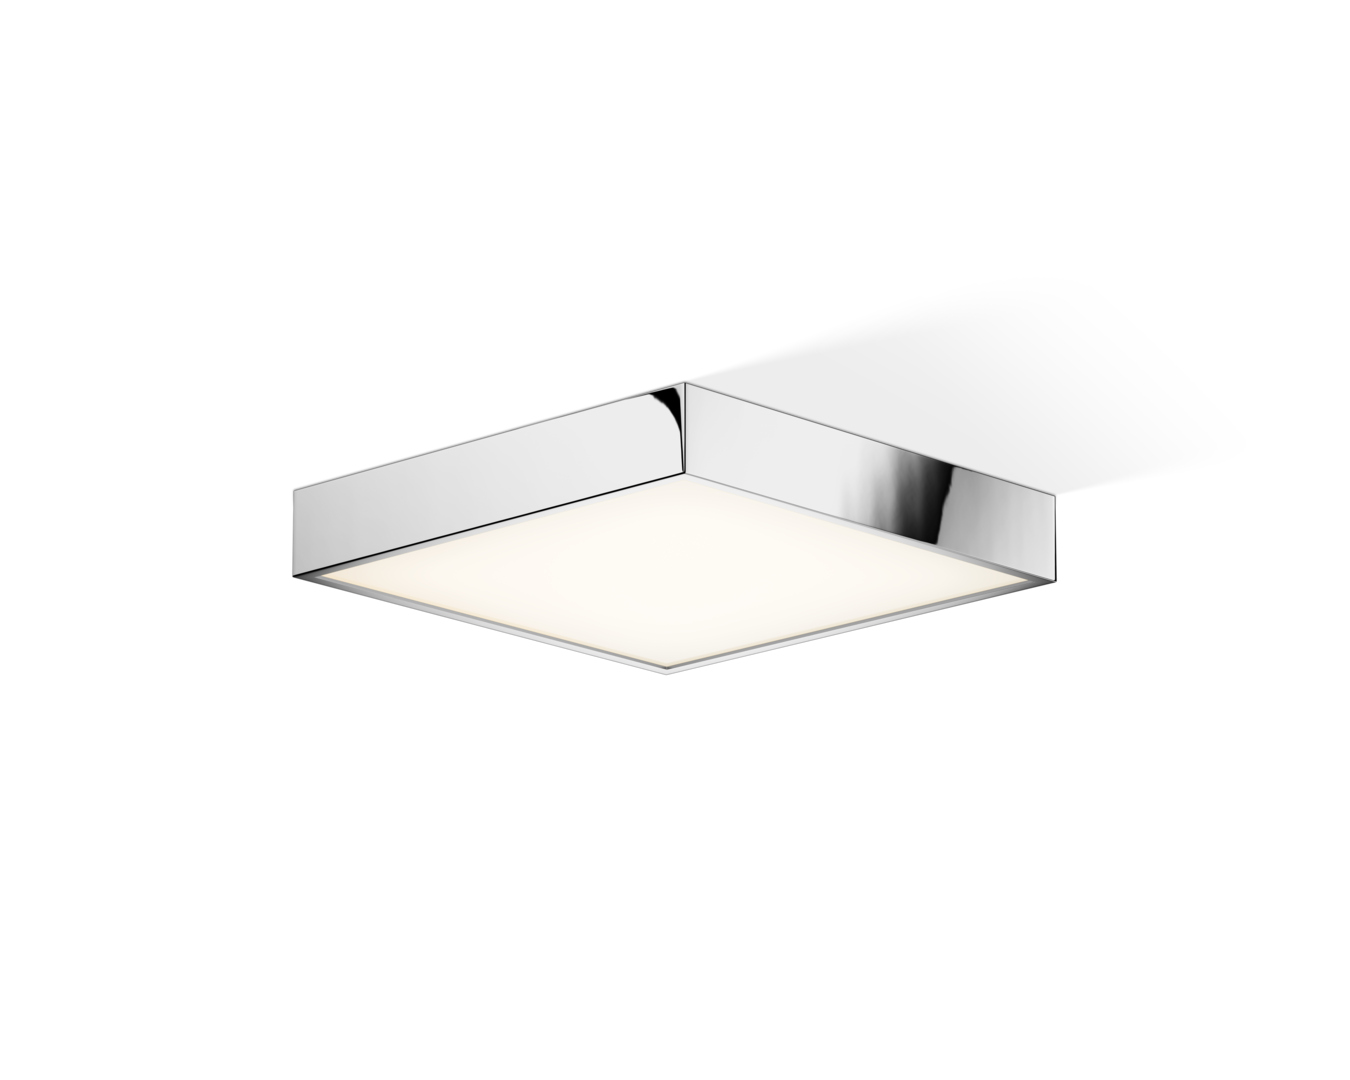 Decor Walther 0218800 DW-Cut 30 N LED Ceiling Light - Chrome